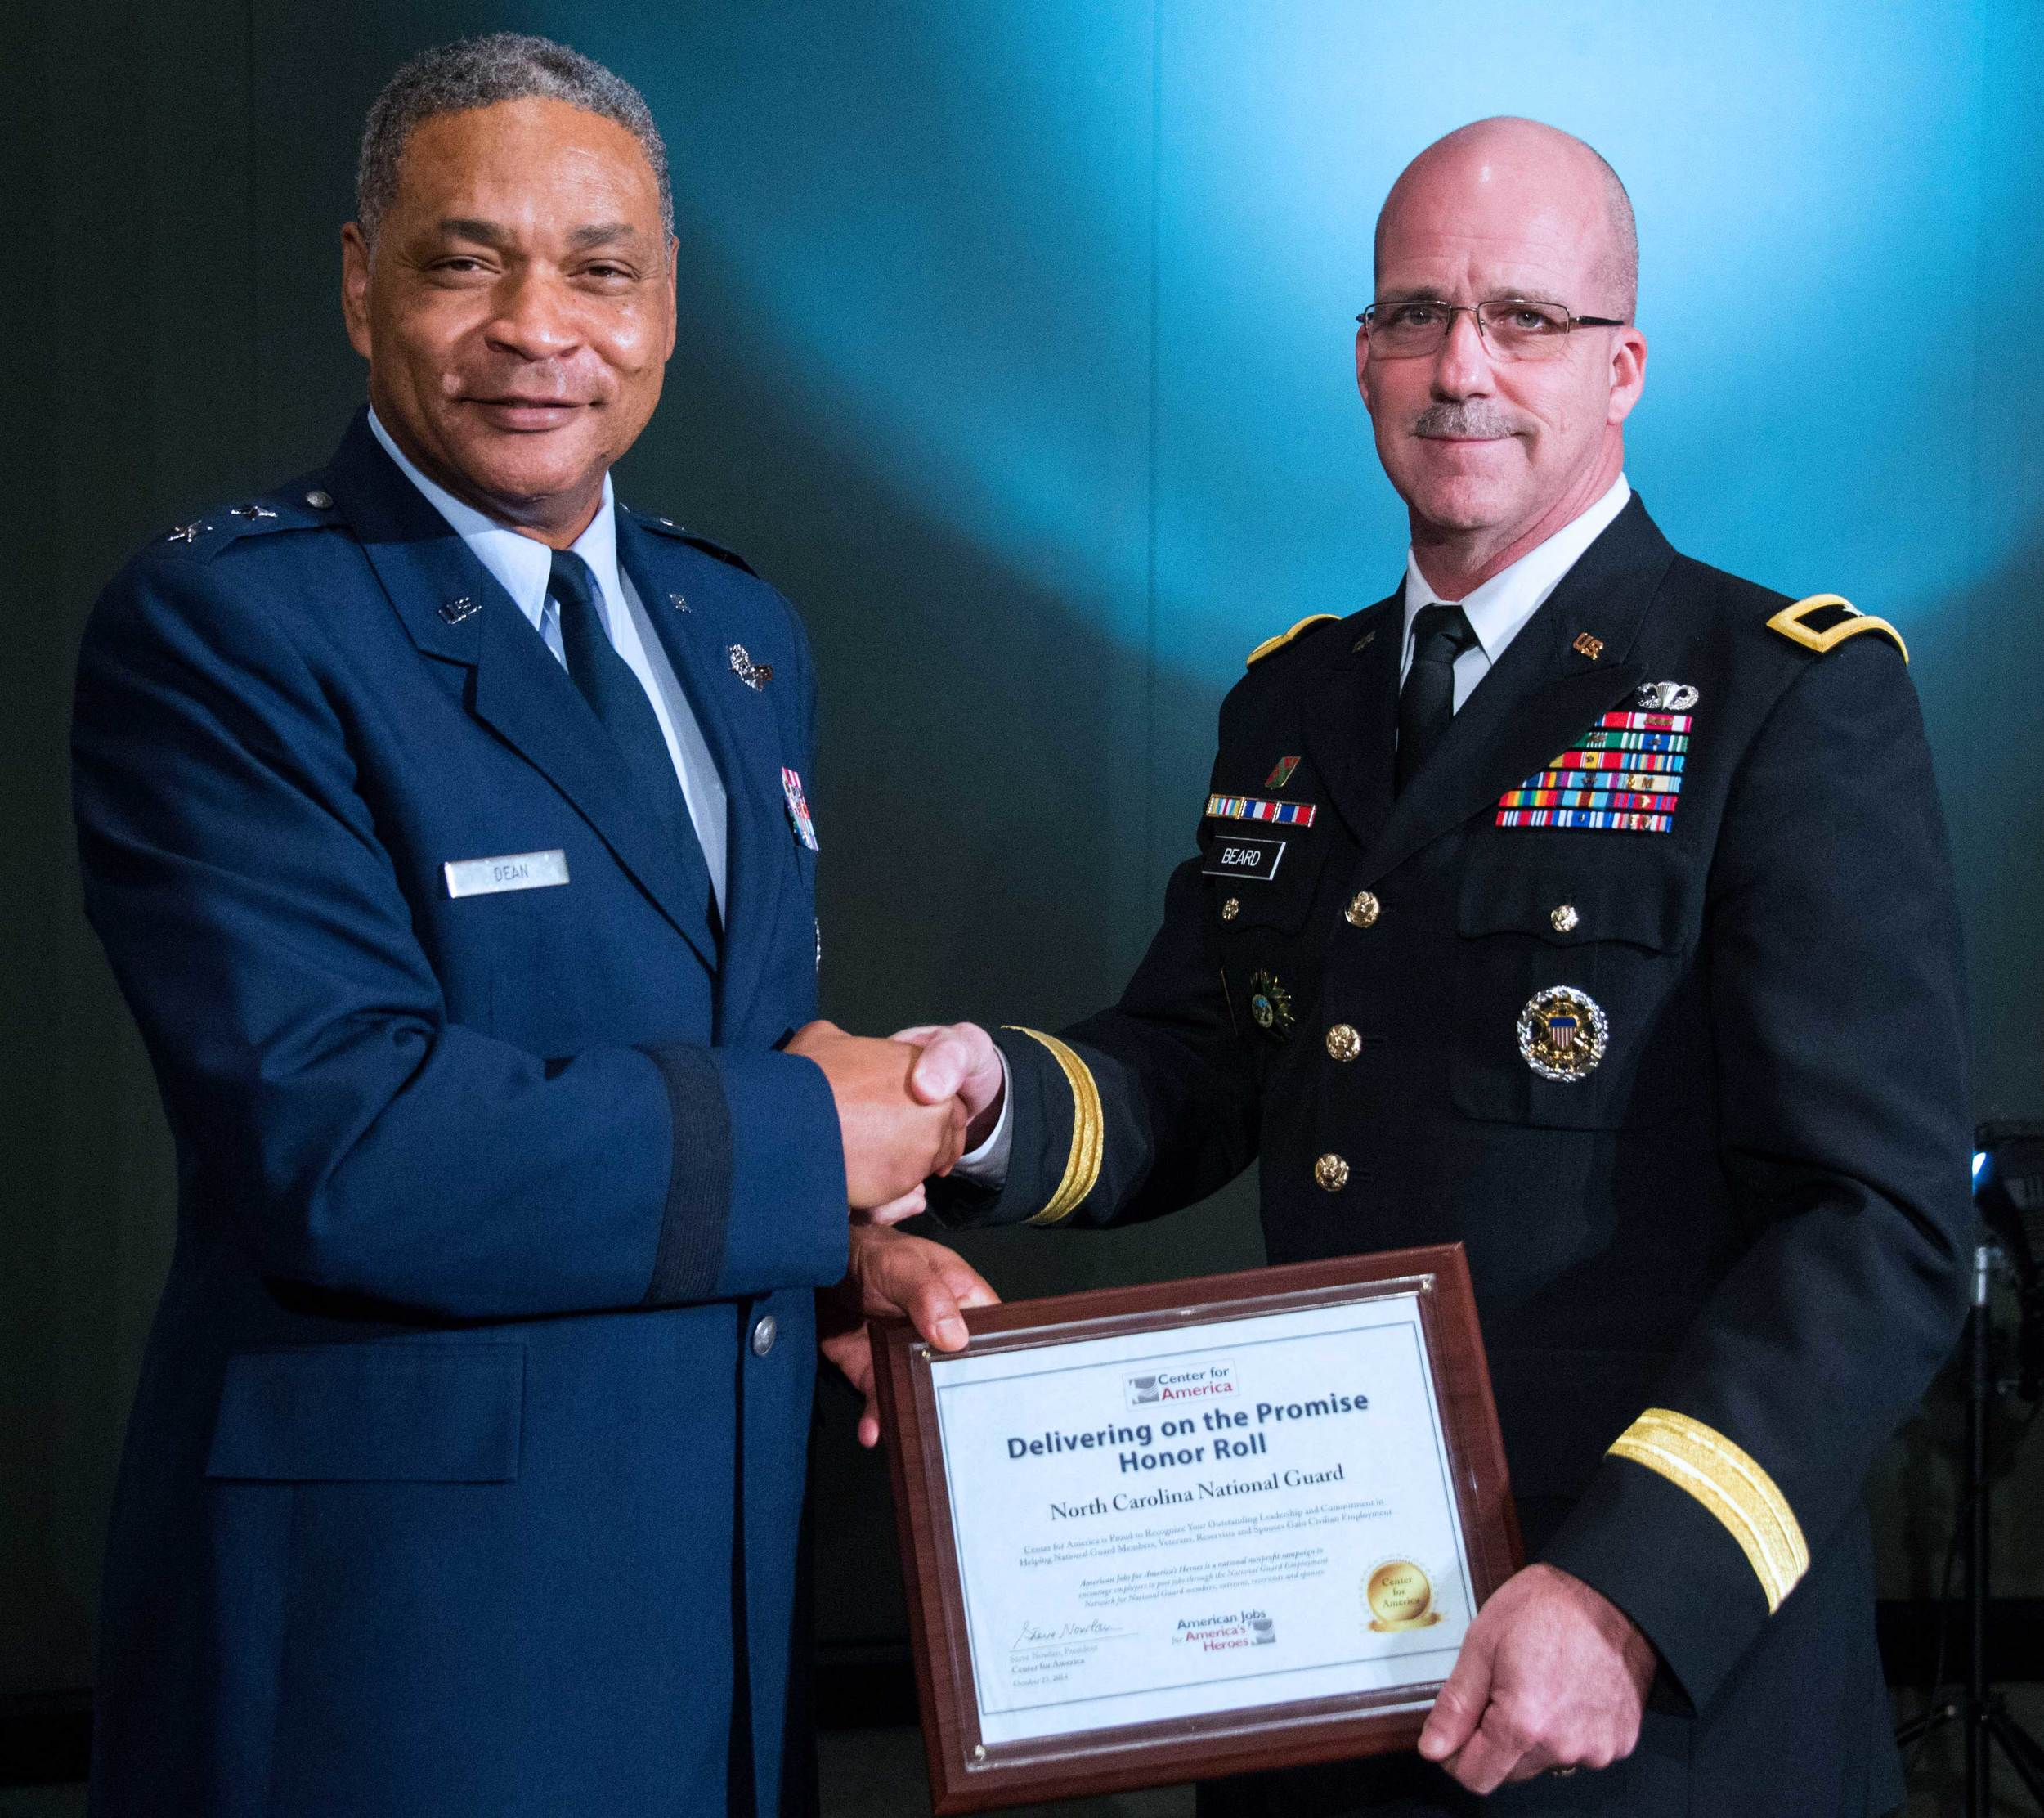 Major General Garry Dean presents the CFA Award to Brigadier General Kenneth Beard, North Carolina National Guard